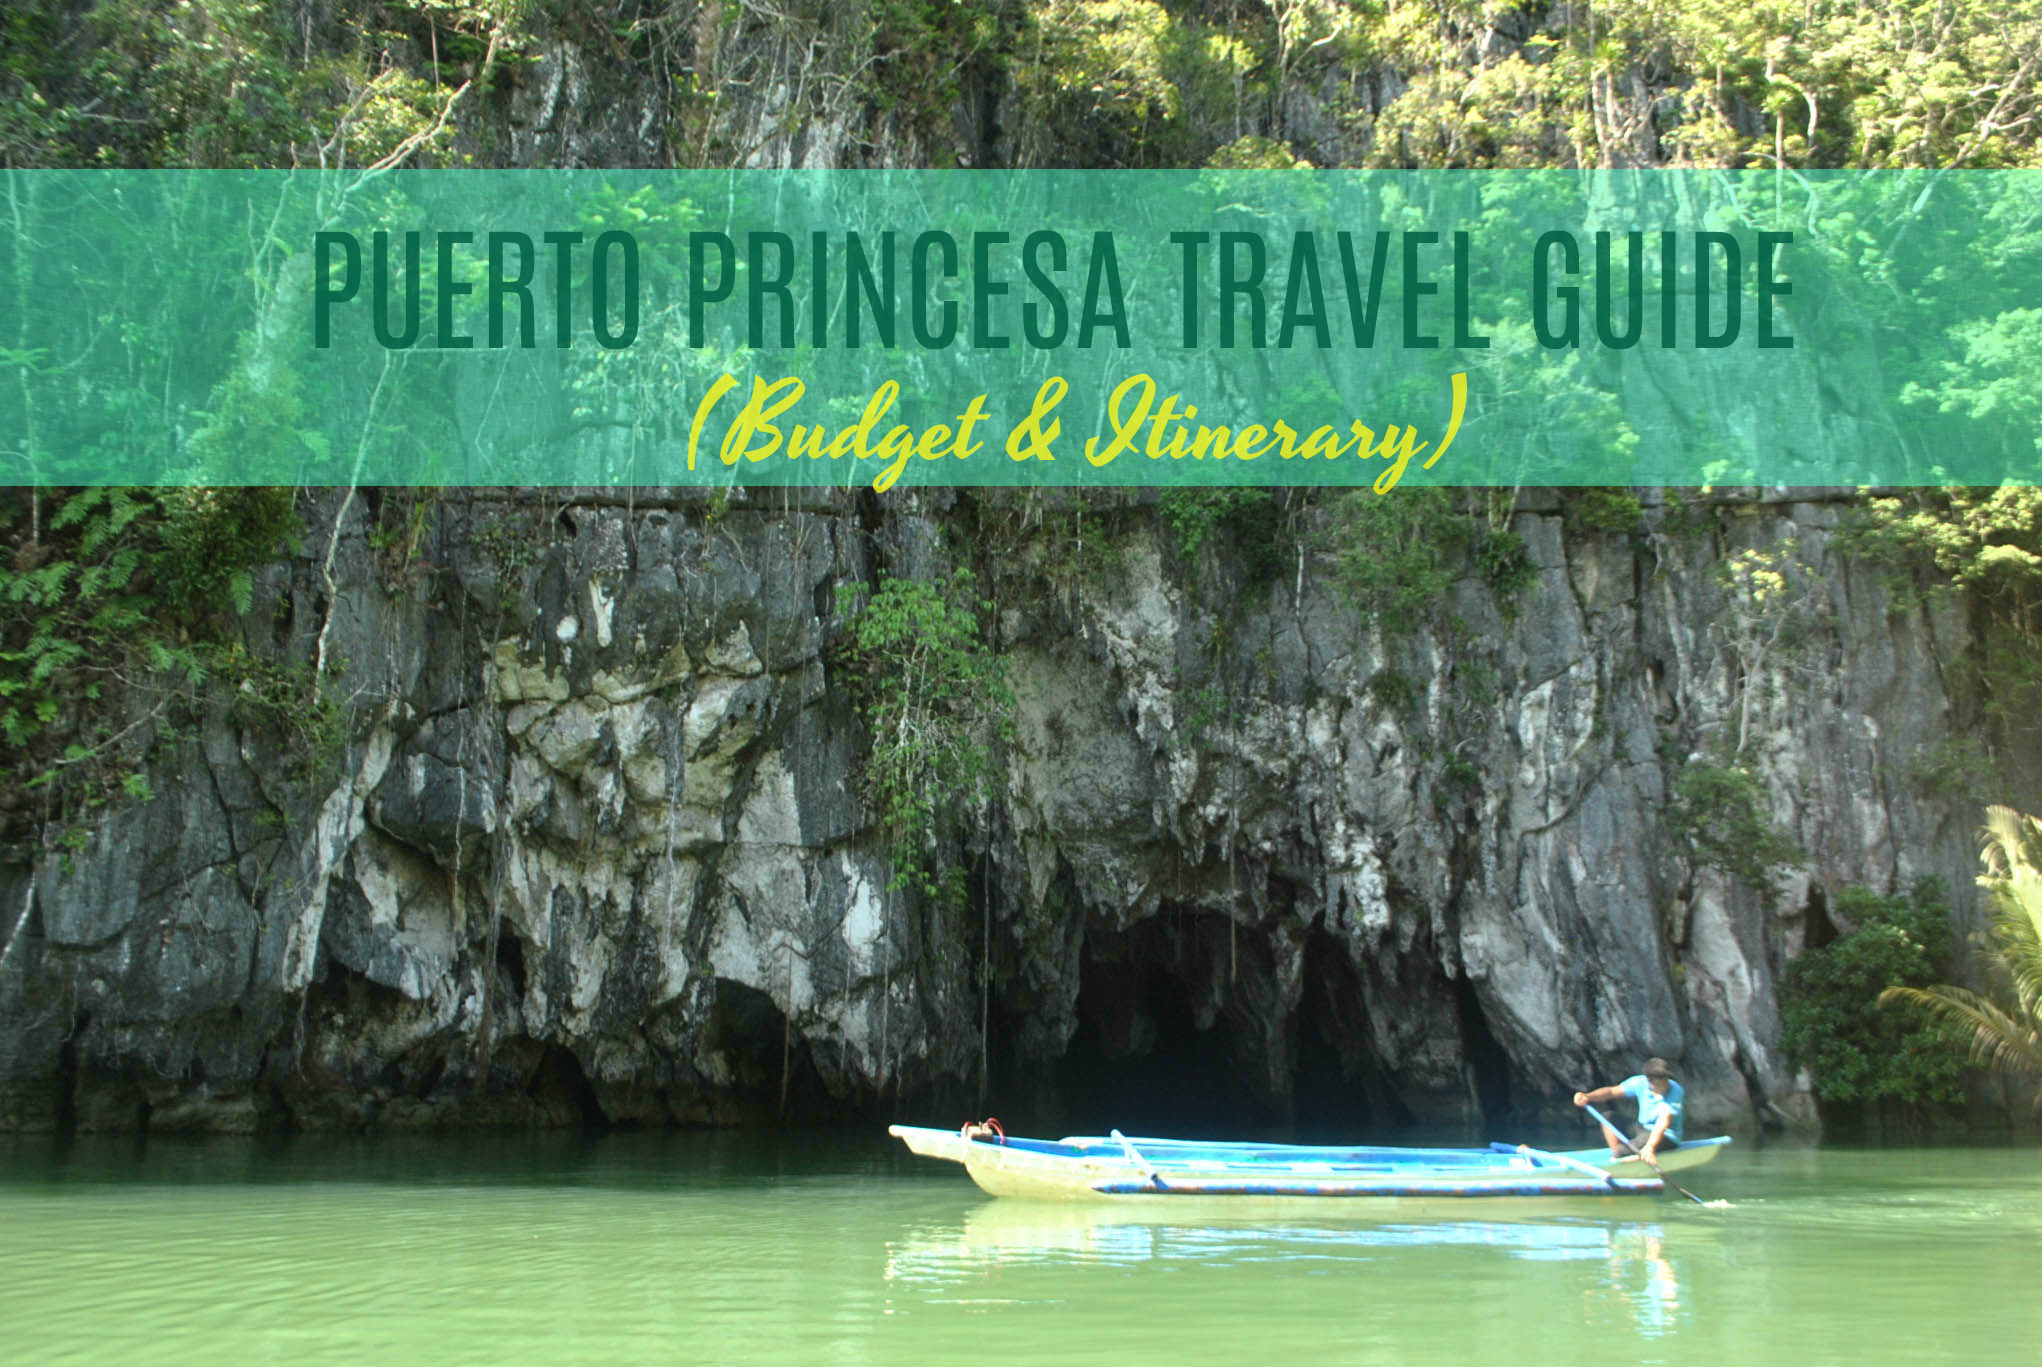 PUERTO PRINCESA TRAVEL GUIDE 2019 (Budget + Itinerary)